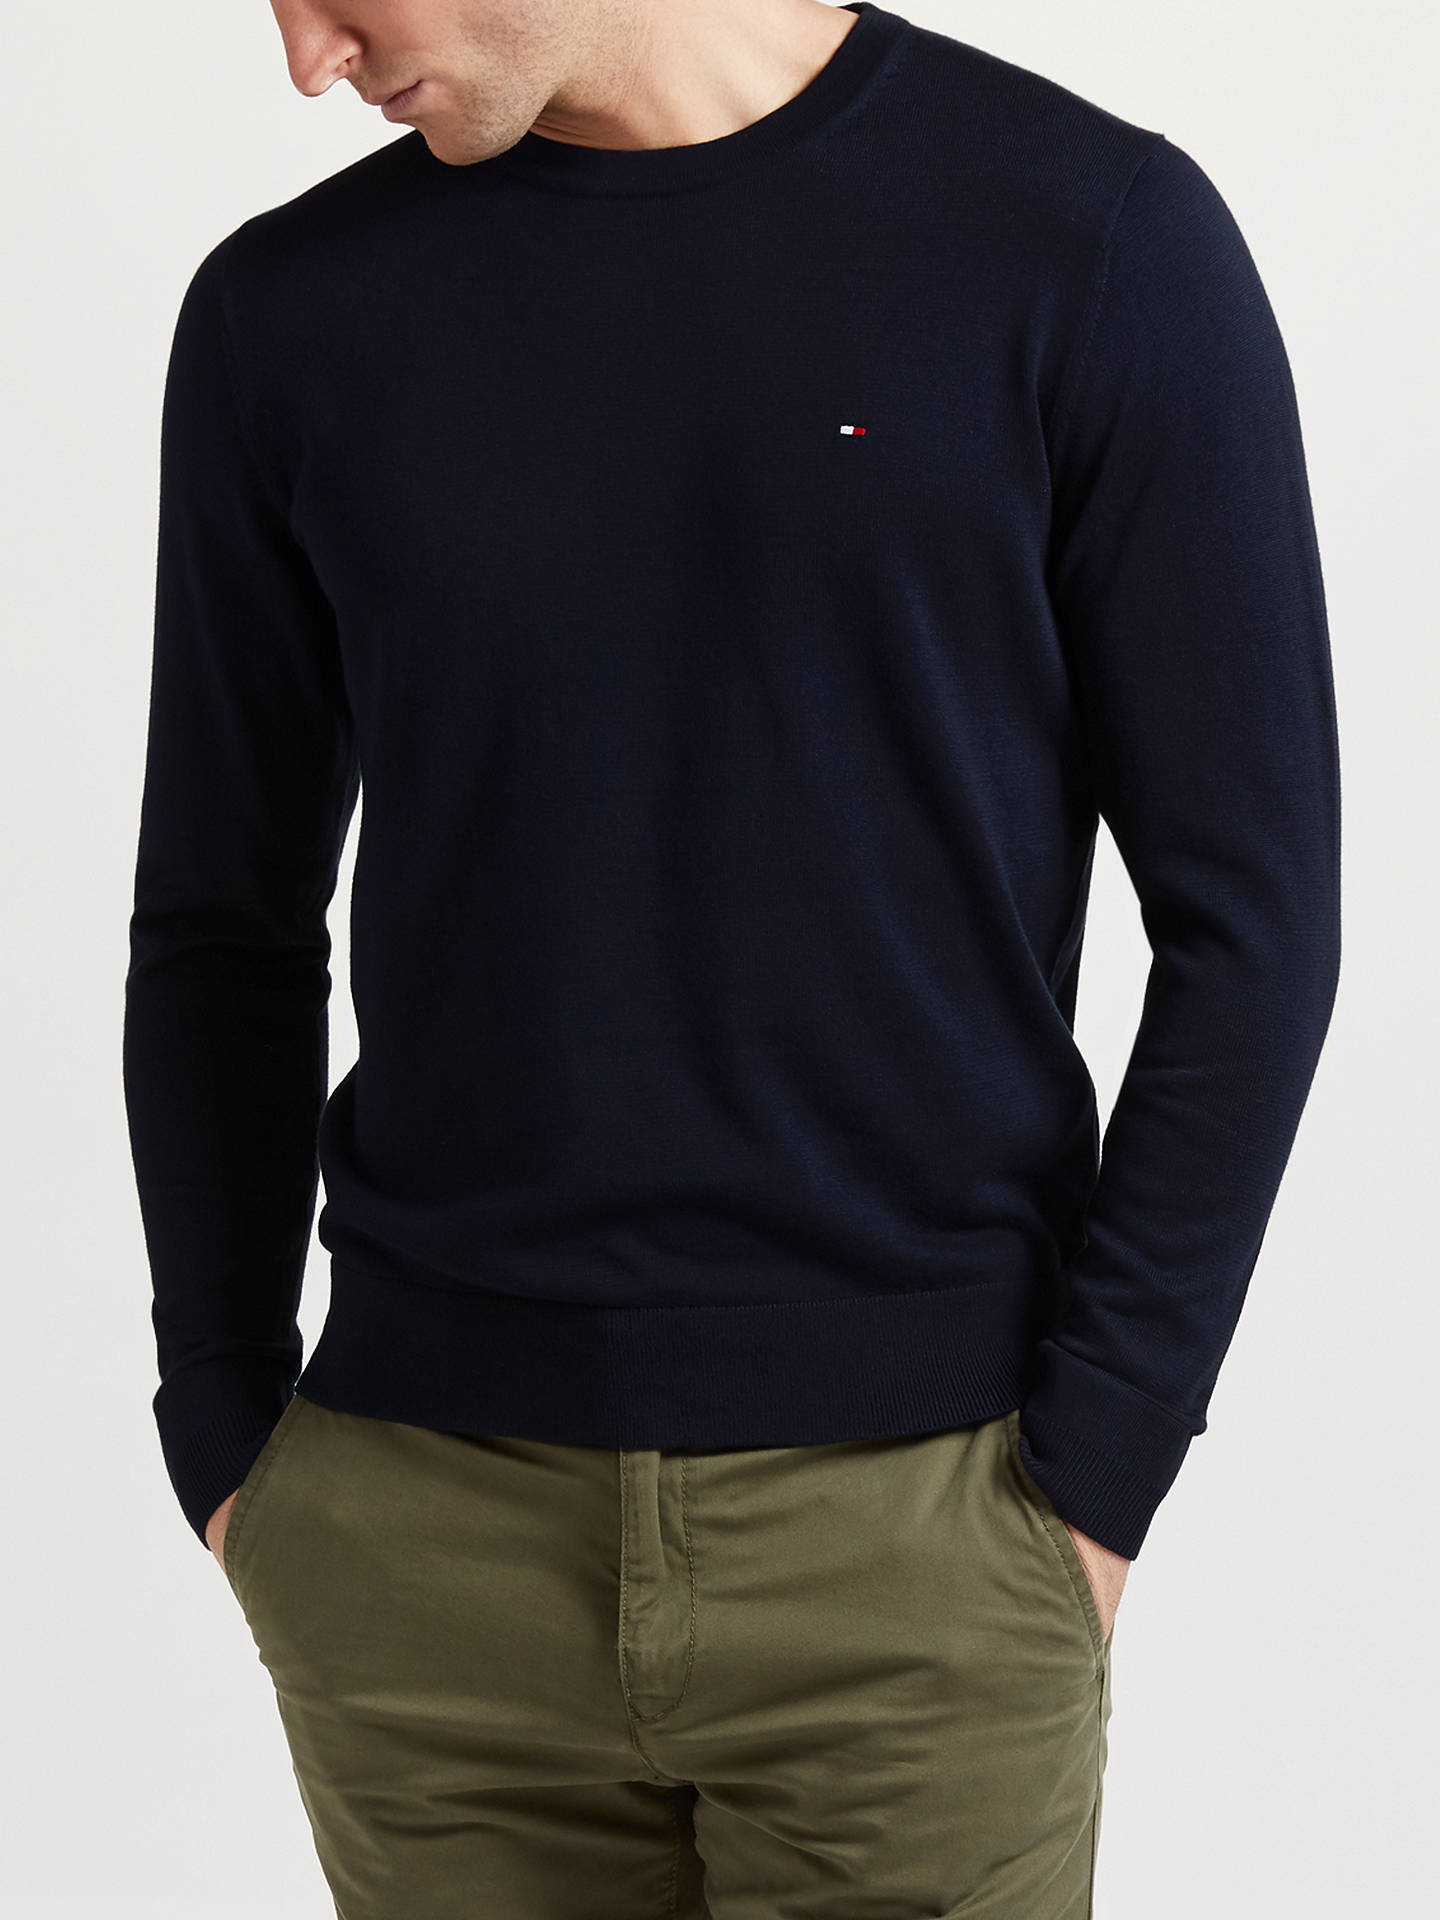 1c4f66011e8fd Tommy Hilfiger Cotton Silk Jumper at John Lewis   Partners